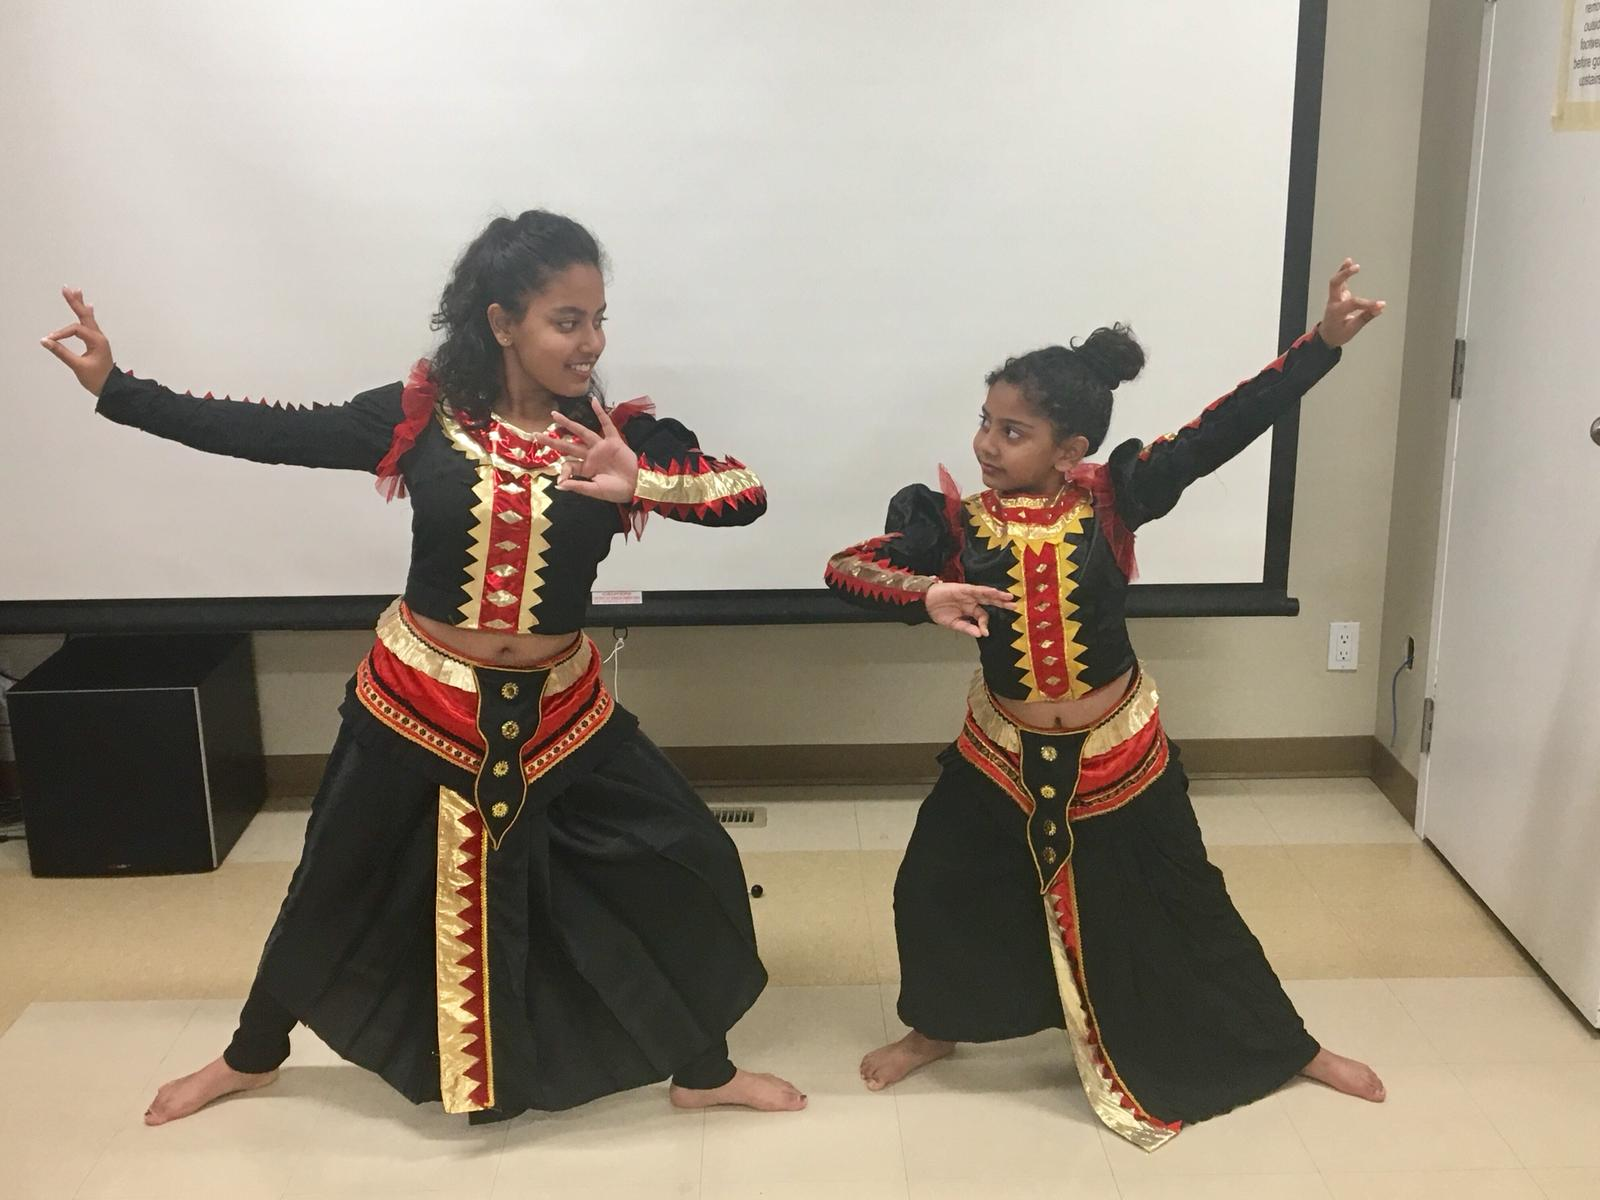 Spirits of Lanka - Alberta Cultural Days